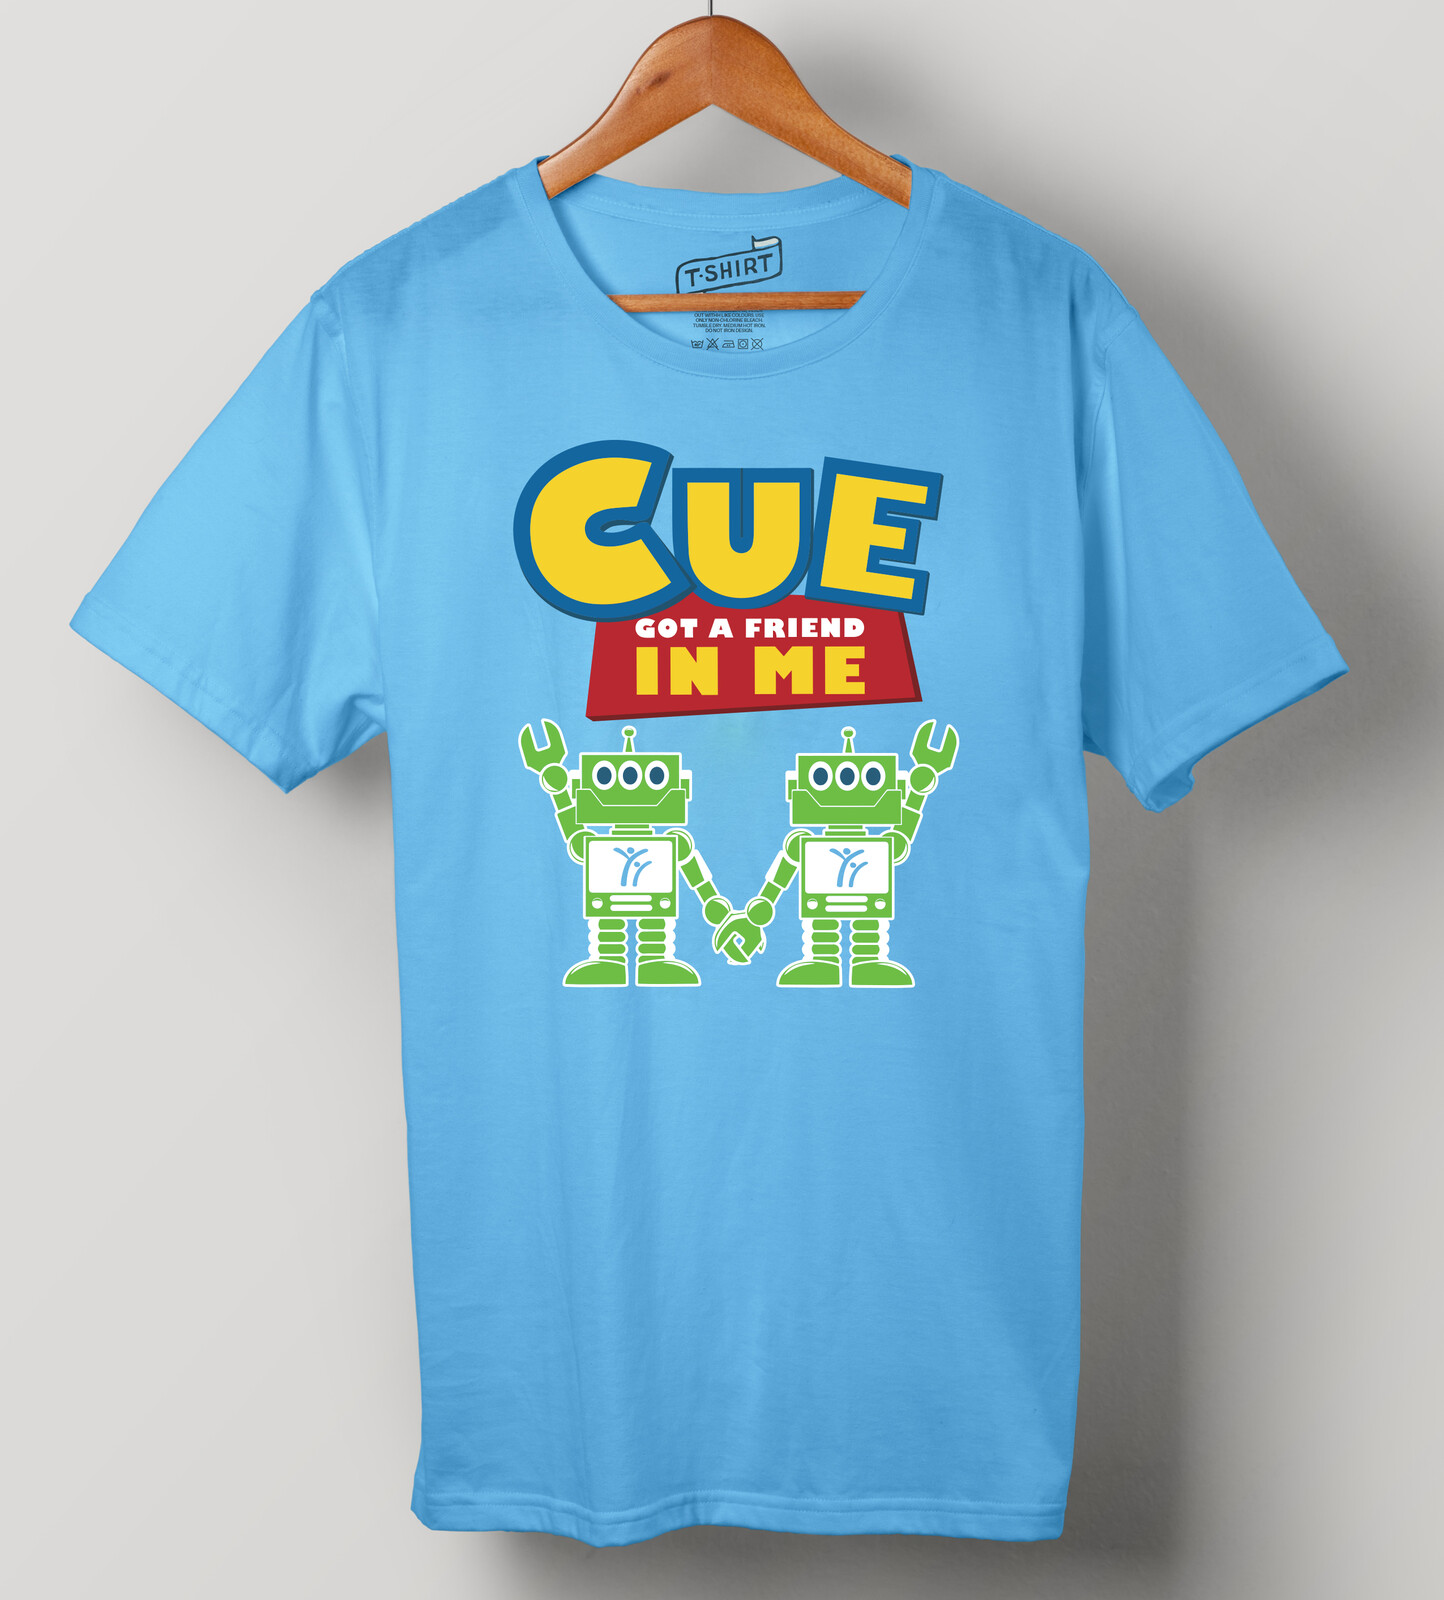 CUE Conference T-Shirt Design 2018